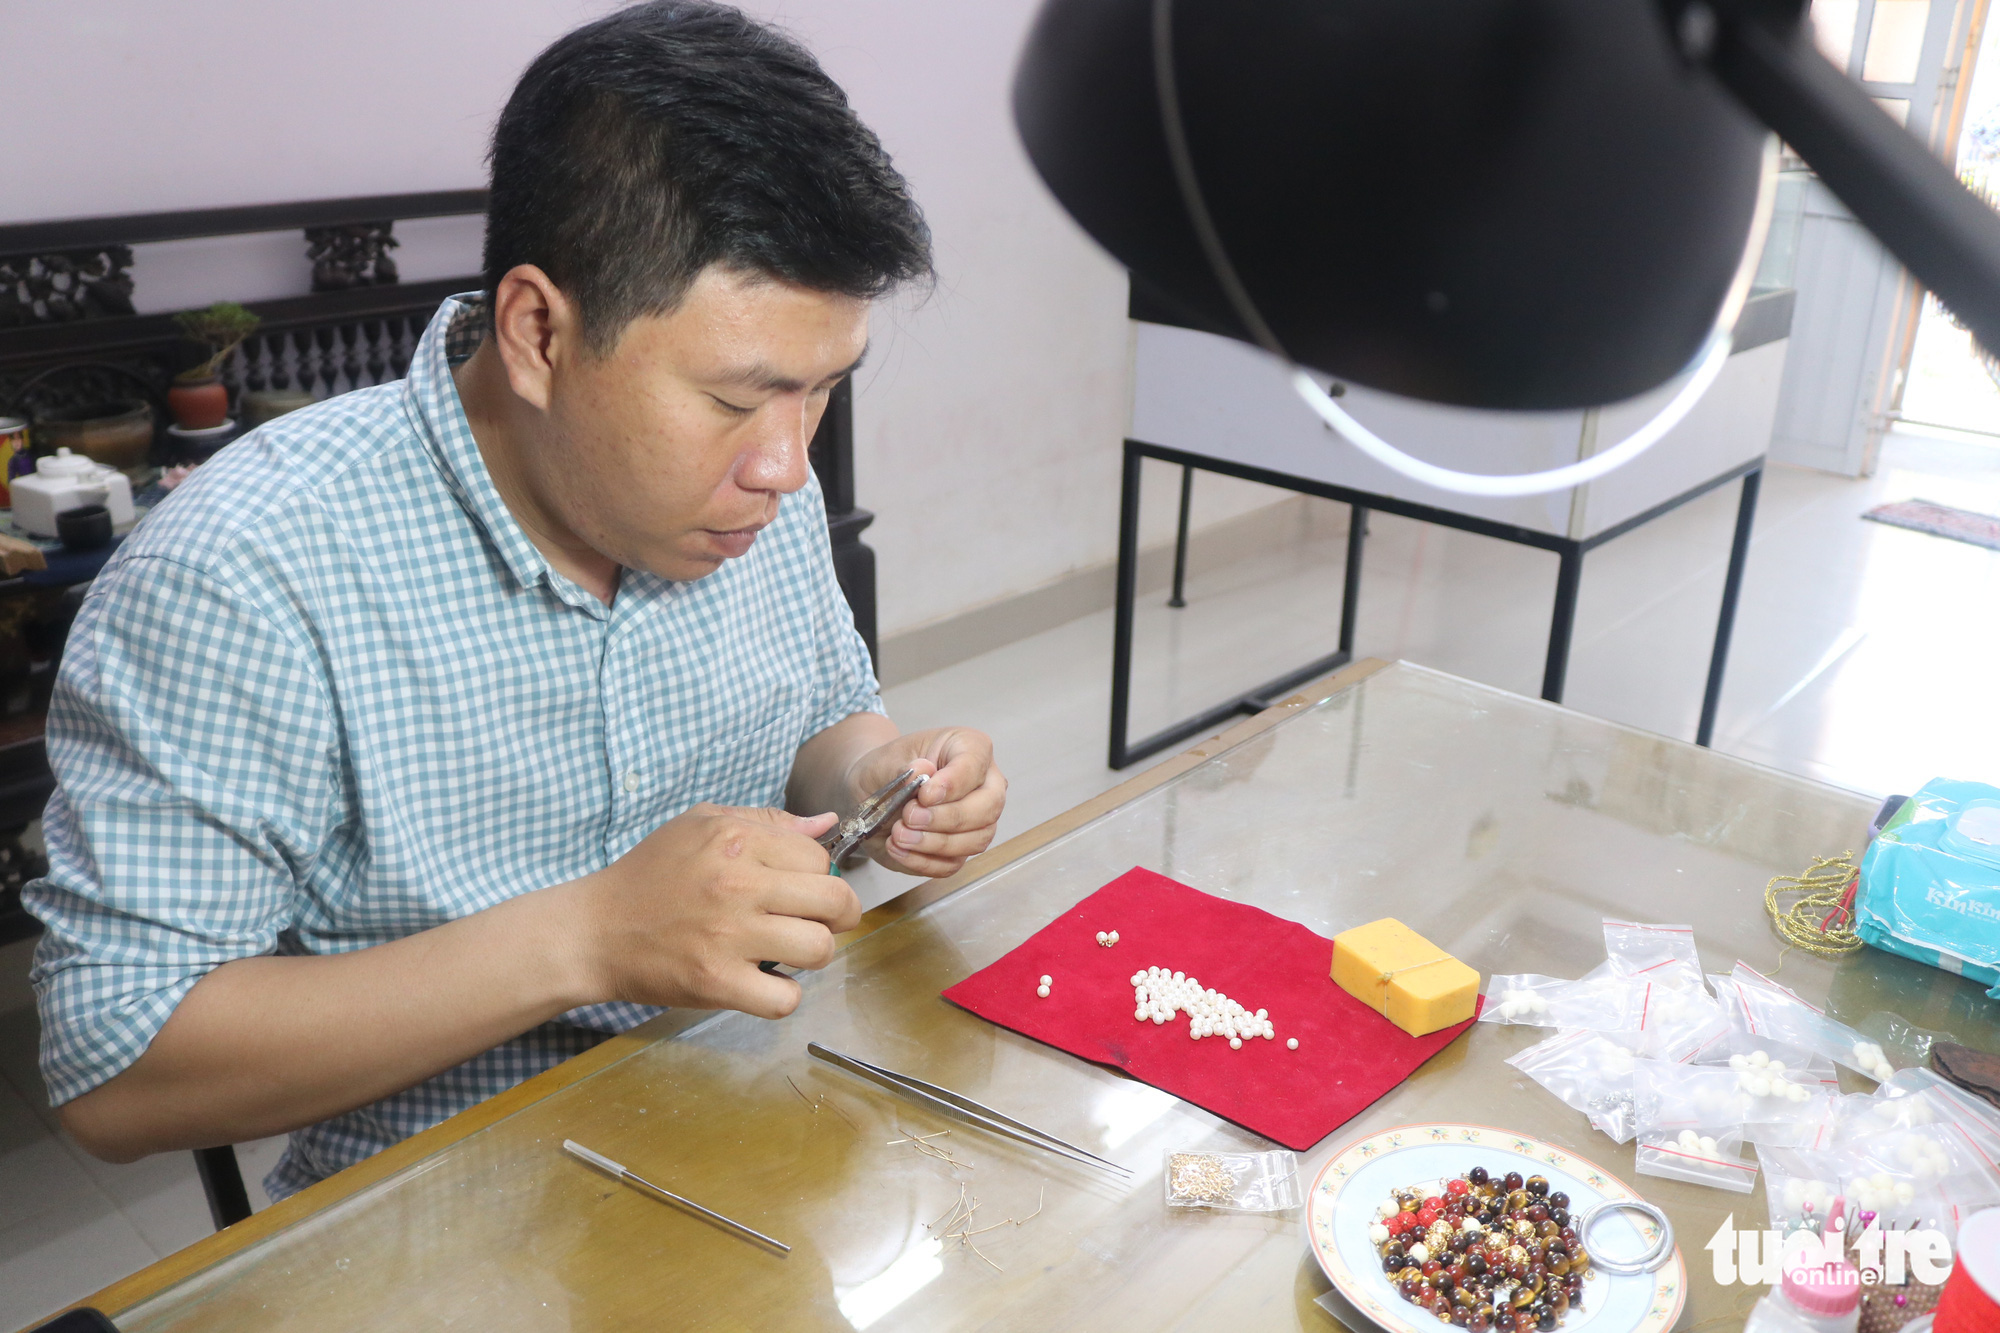 Tran Quang Minh Tan makes buttons for Nguyen Dynasty clothing